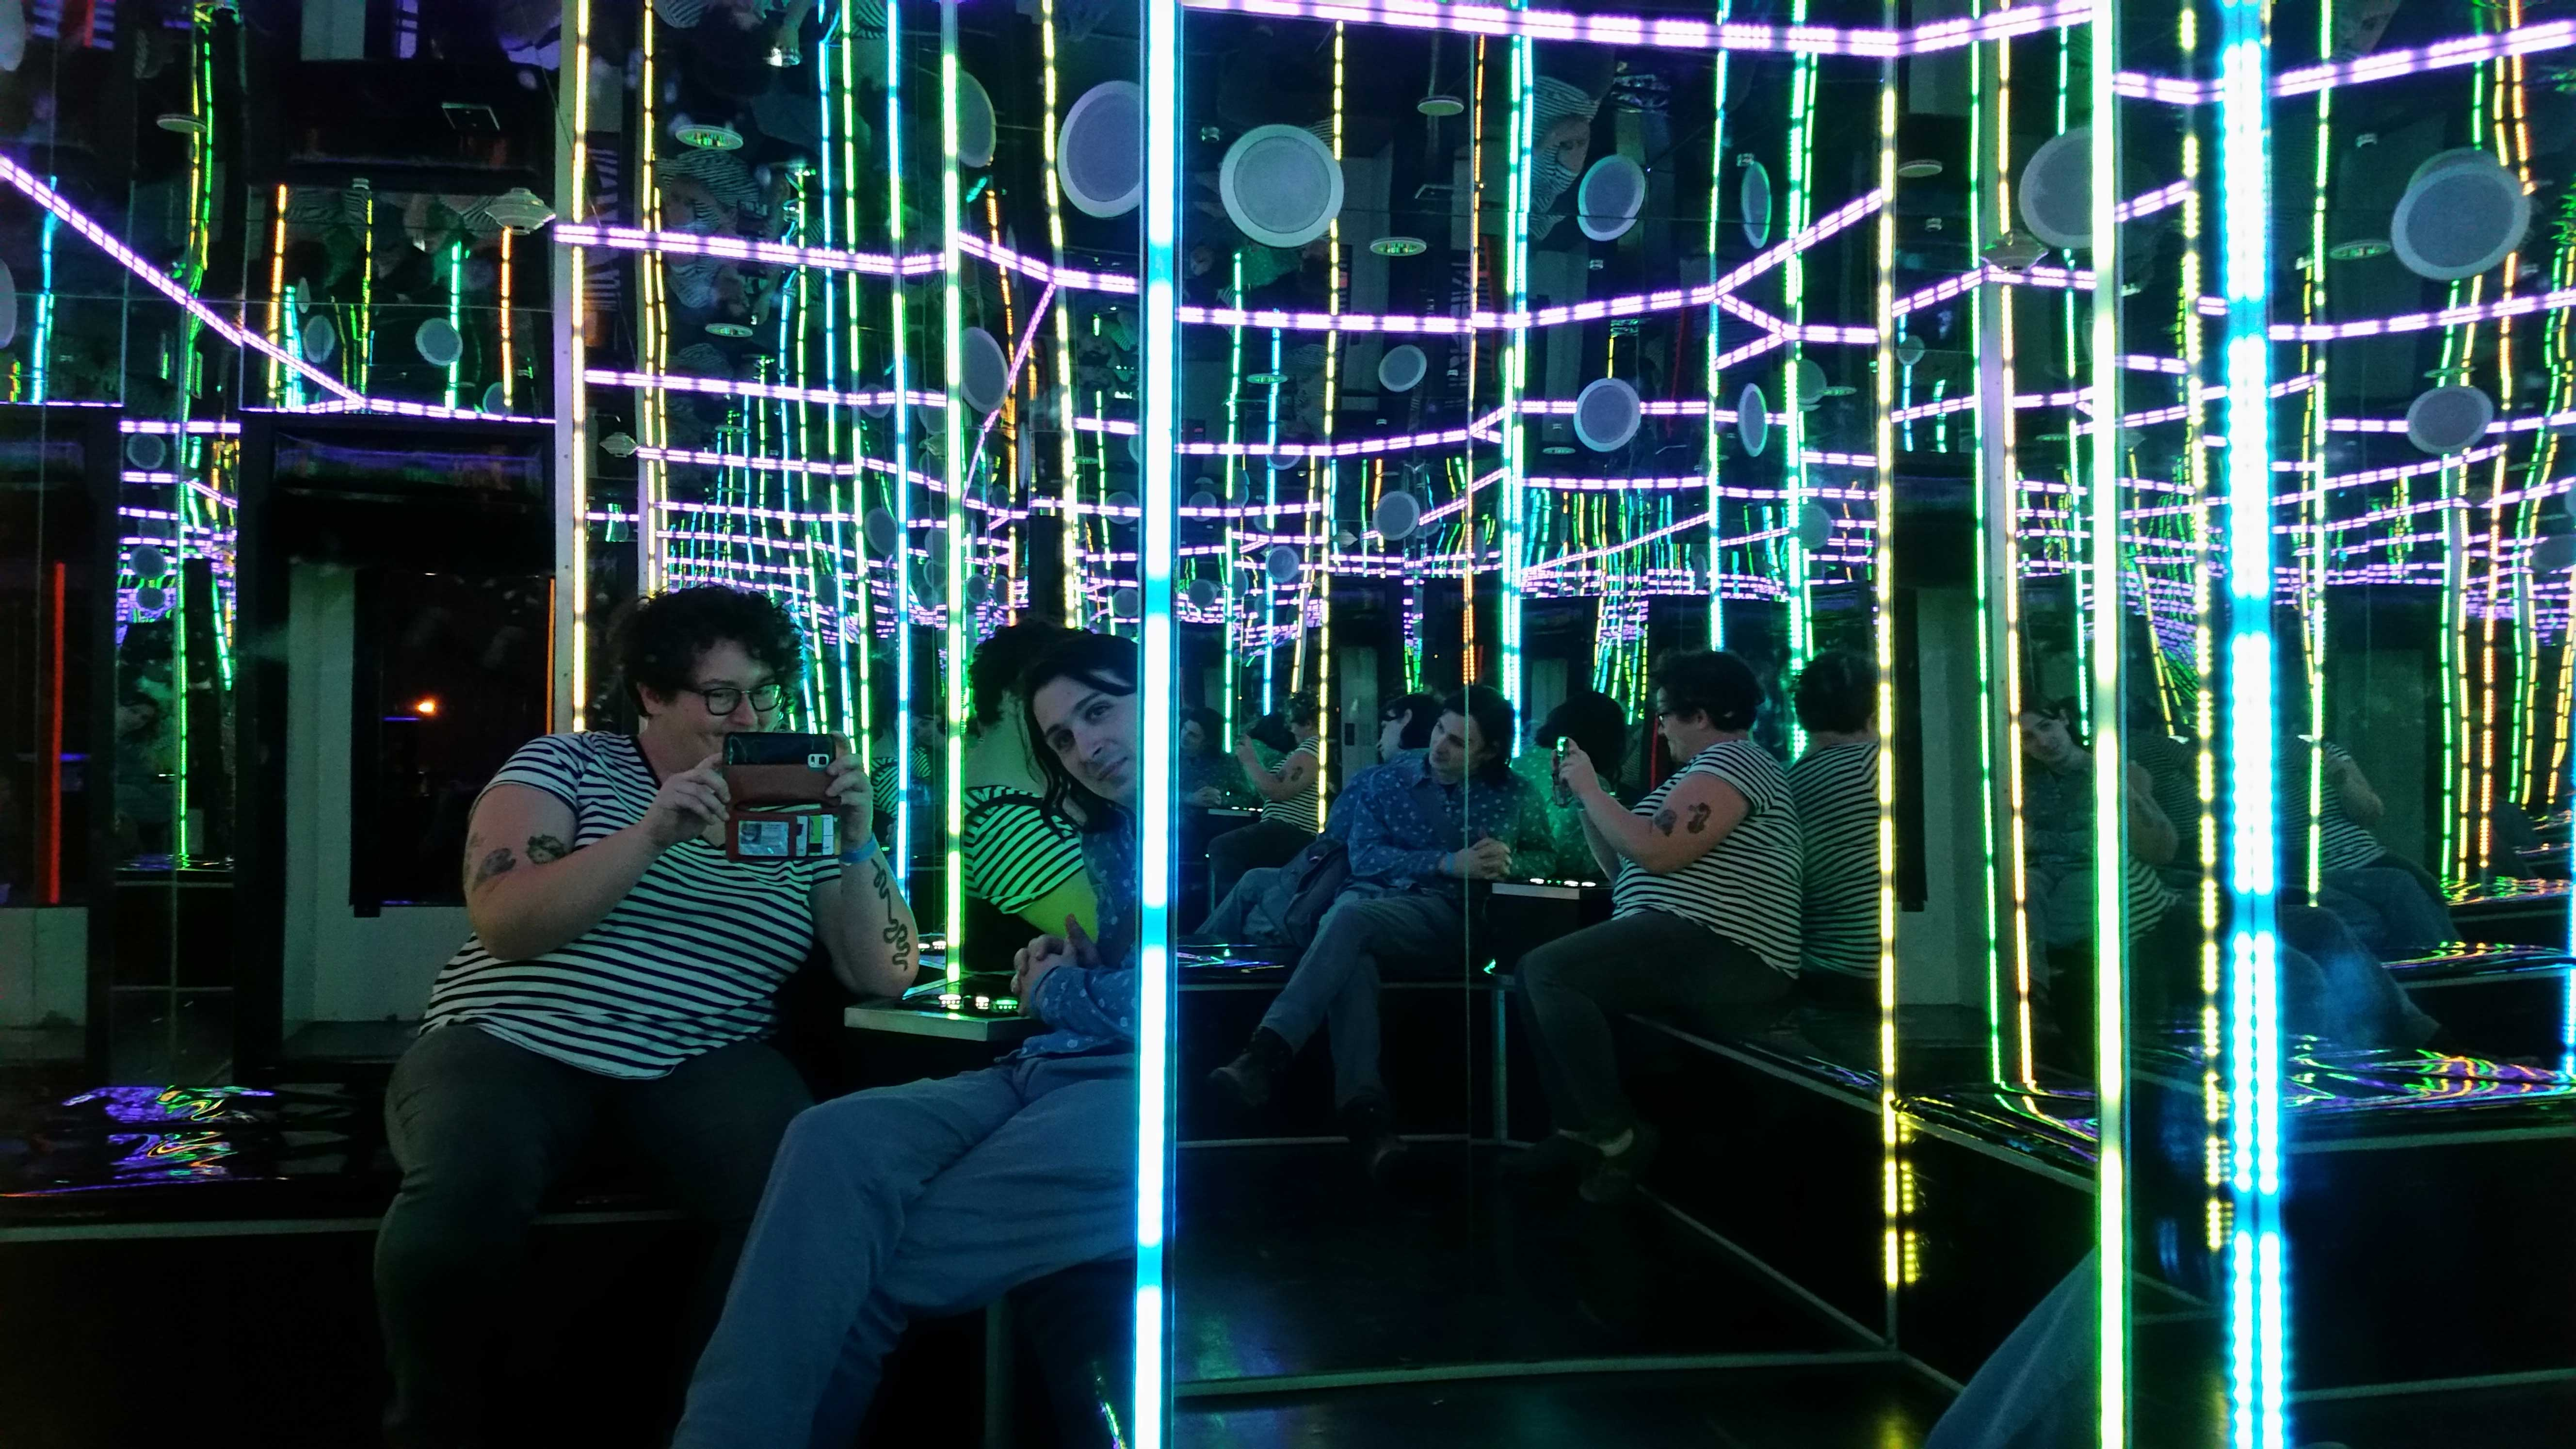 Picture of a mirrored room lit by blue-green fluorescent lights. The photographer and another person are visible in several reflections on the walls.